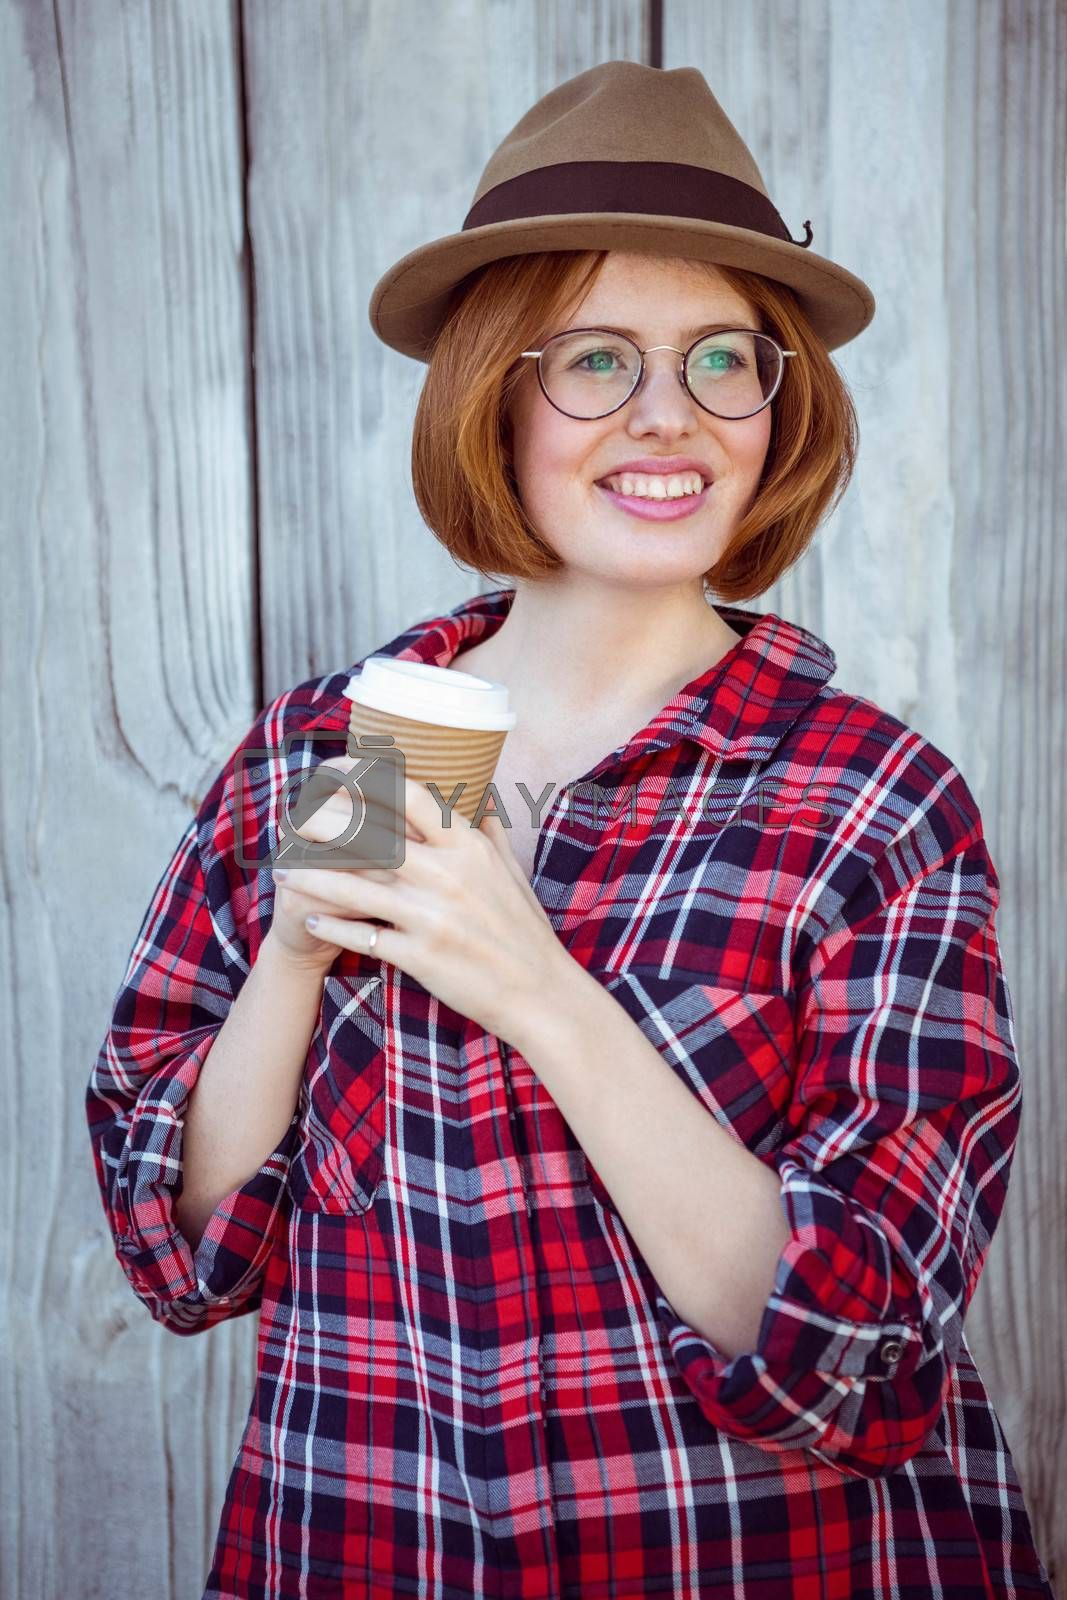 smiling hipster woman holding a coffee cup against a wooden background